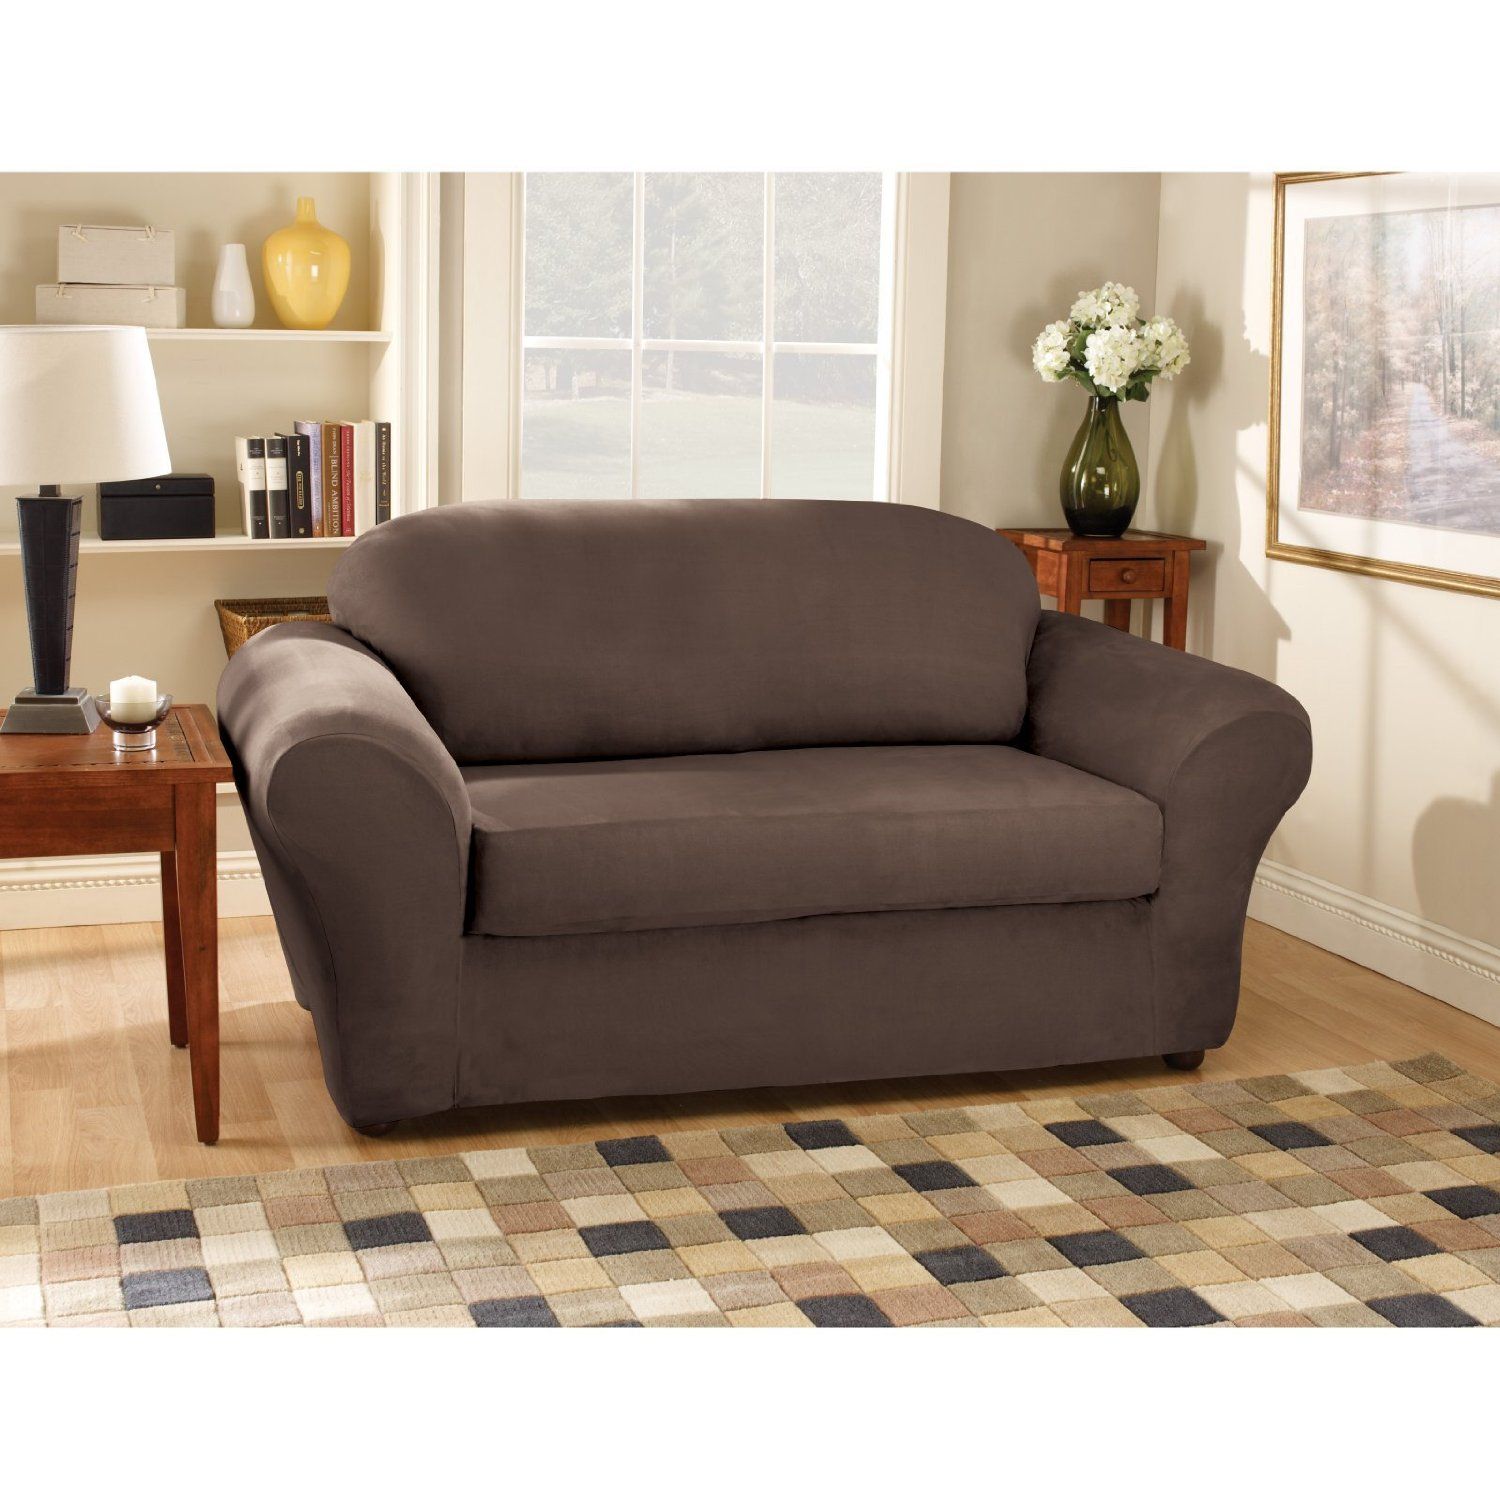 Cheap Sofa And Loveseat Covers